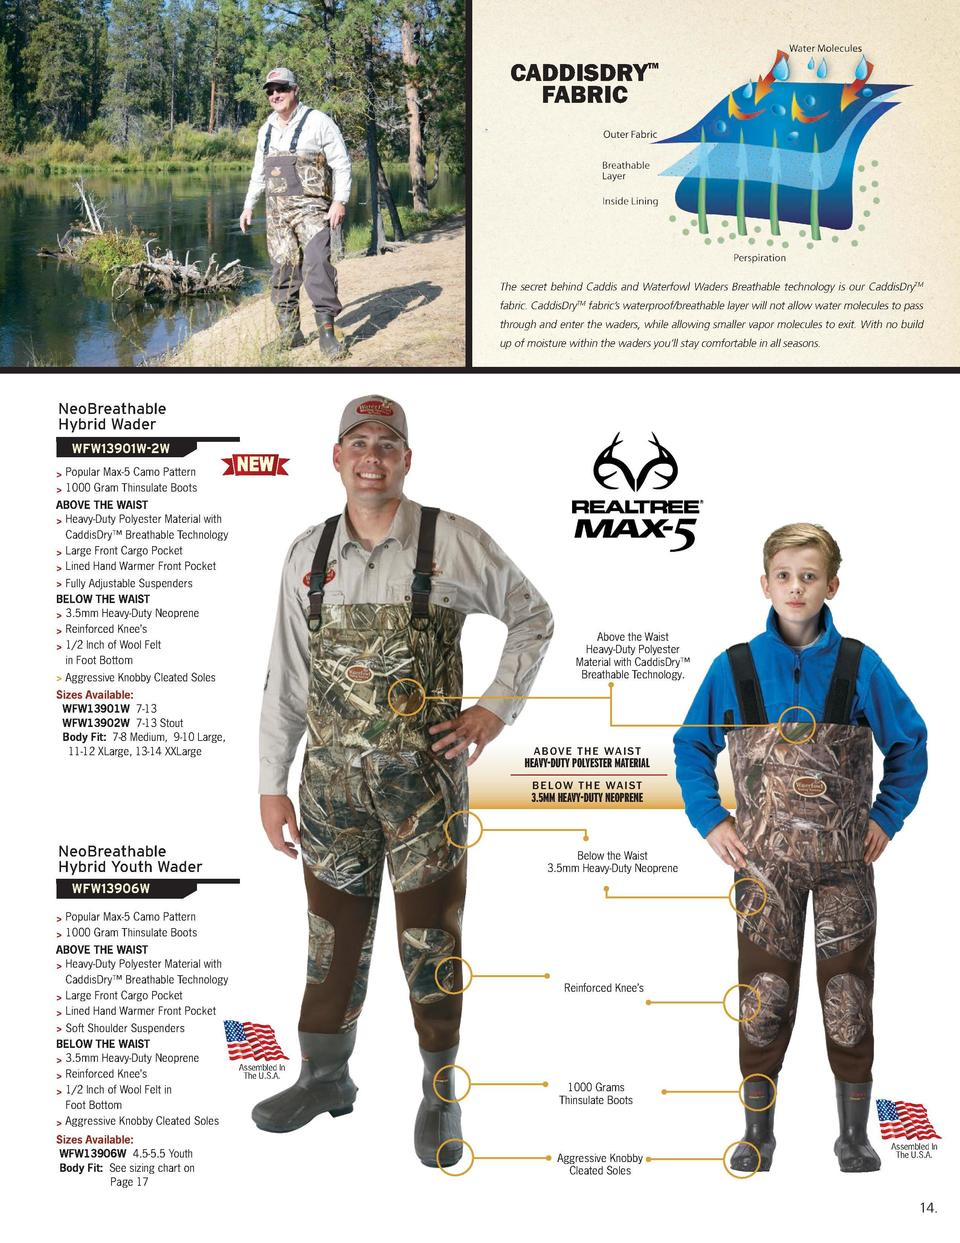 COMFORTABLE AND AFFORDABLE FOR ALL HUNTING CONDITIONS  CaddisDry    Fabric  OUR NEW INNOVATIVE HYBRID WADERS KEEP YOU WARM...